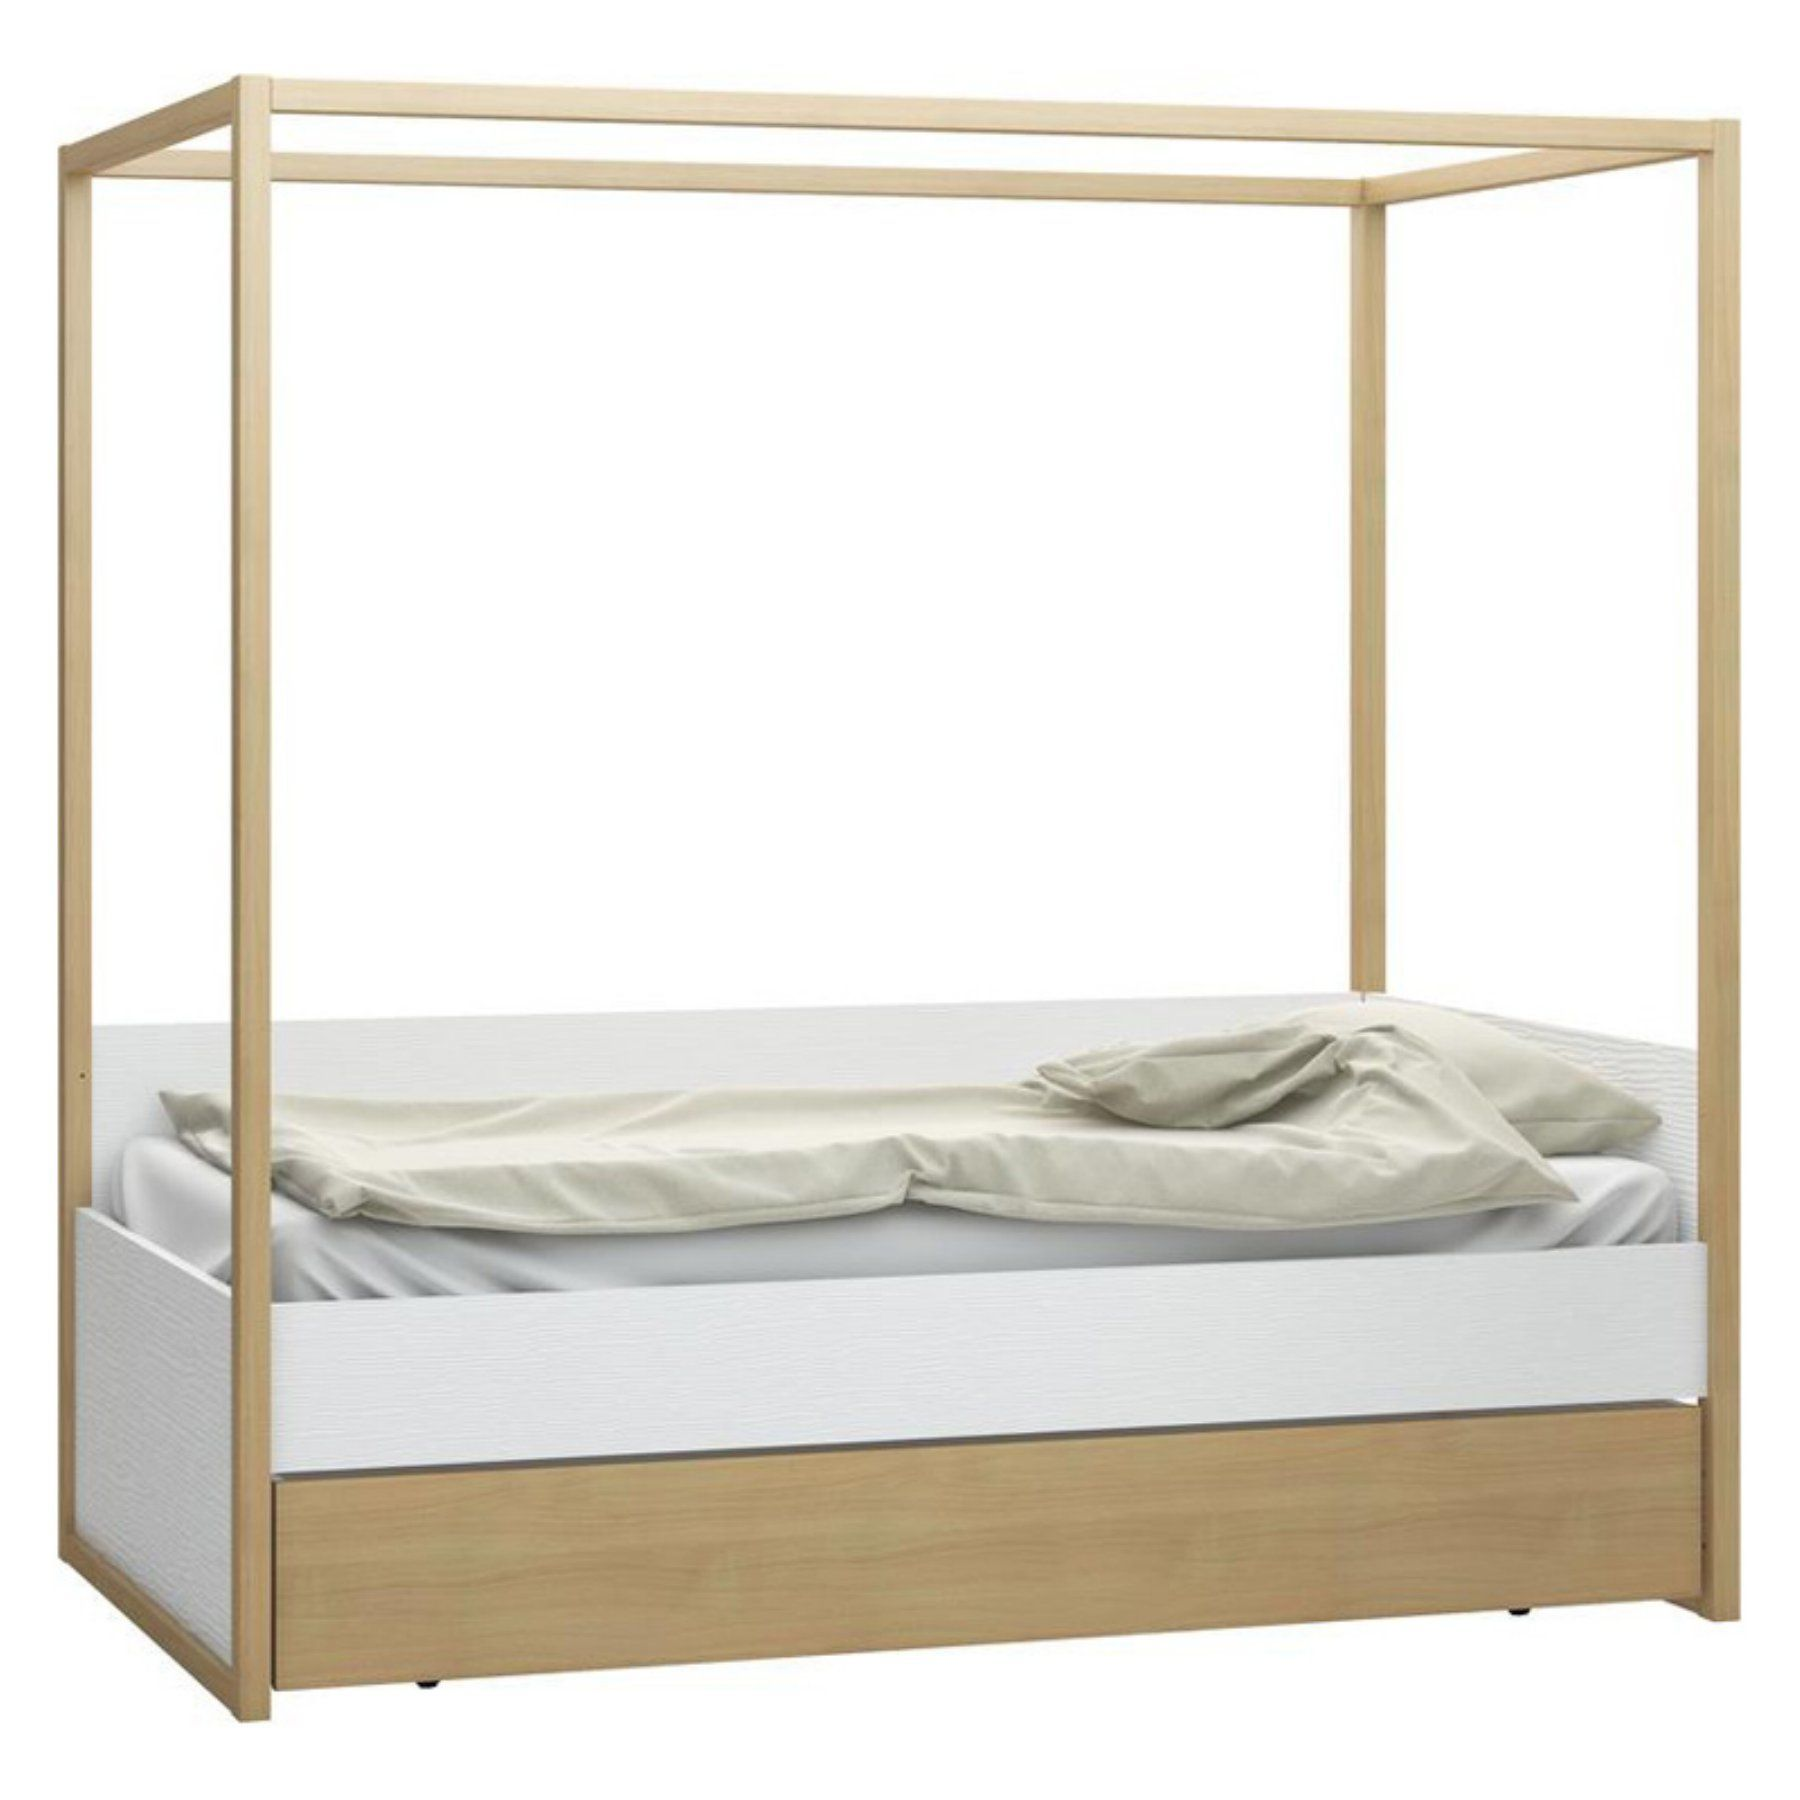 Voelkel 4You Canopy Bed with Underbed Storage Drawer - 4014001+4014005+6015865  sc 1 st  Pinterest & Voelkel 4You Canopy Bed with Underbed Storage Drawer - 4014001+ ...